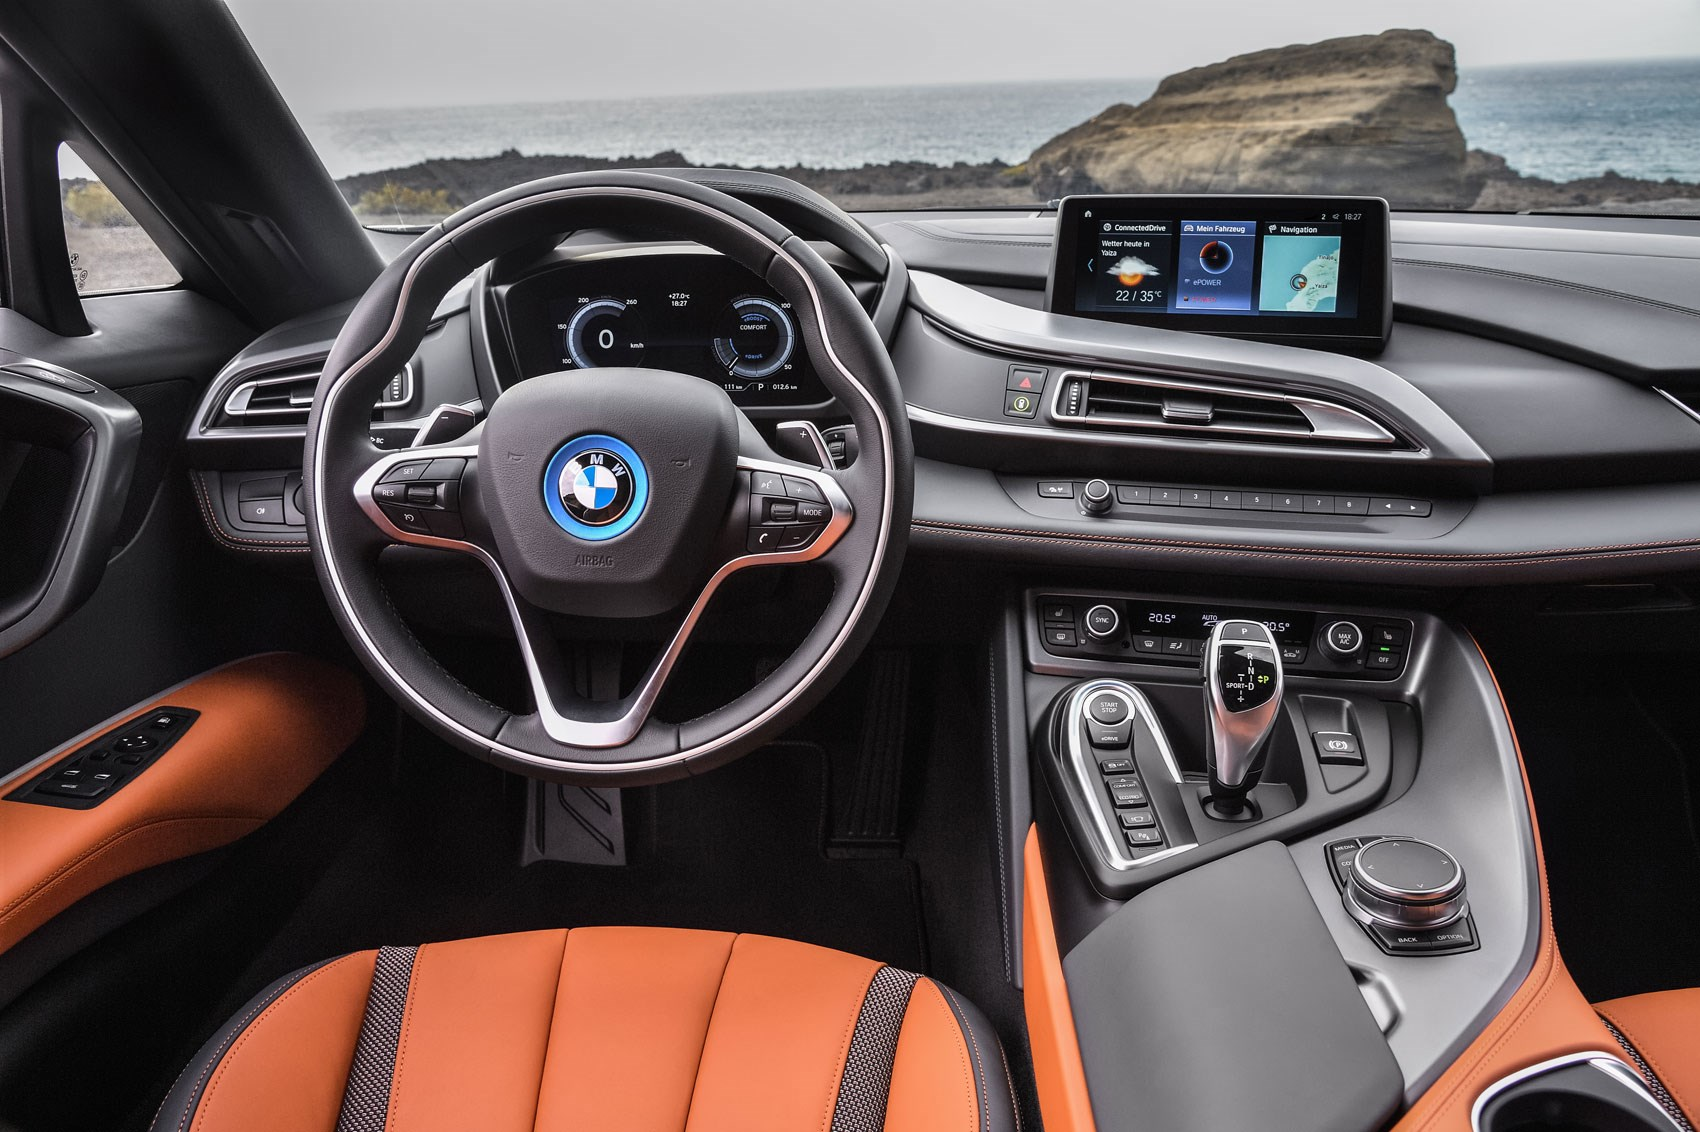 Soft Top Super Hybrid 2018 Bmw I8 Roadster Revealed Car Magazine